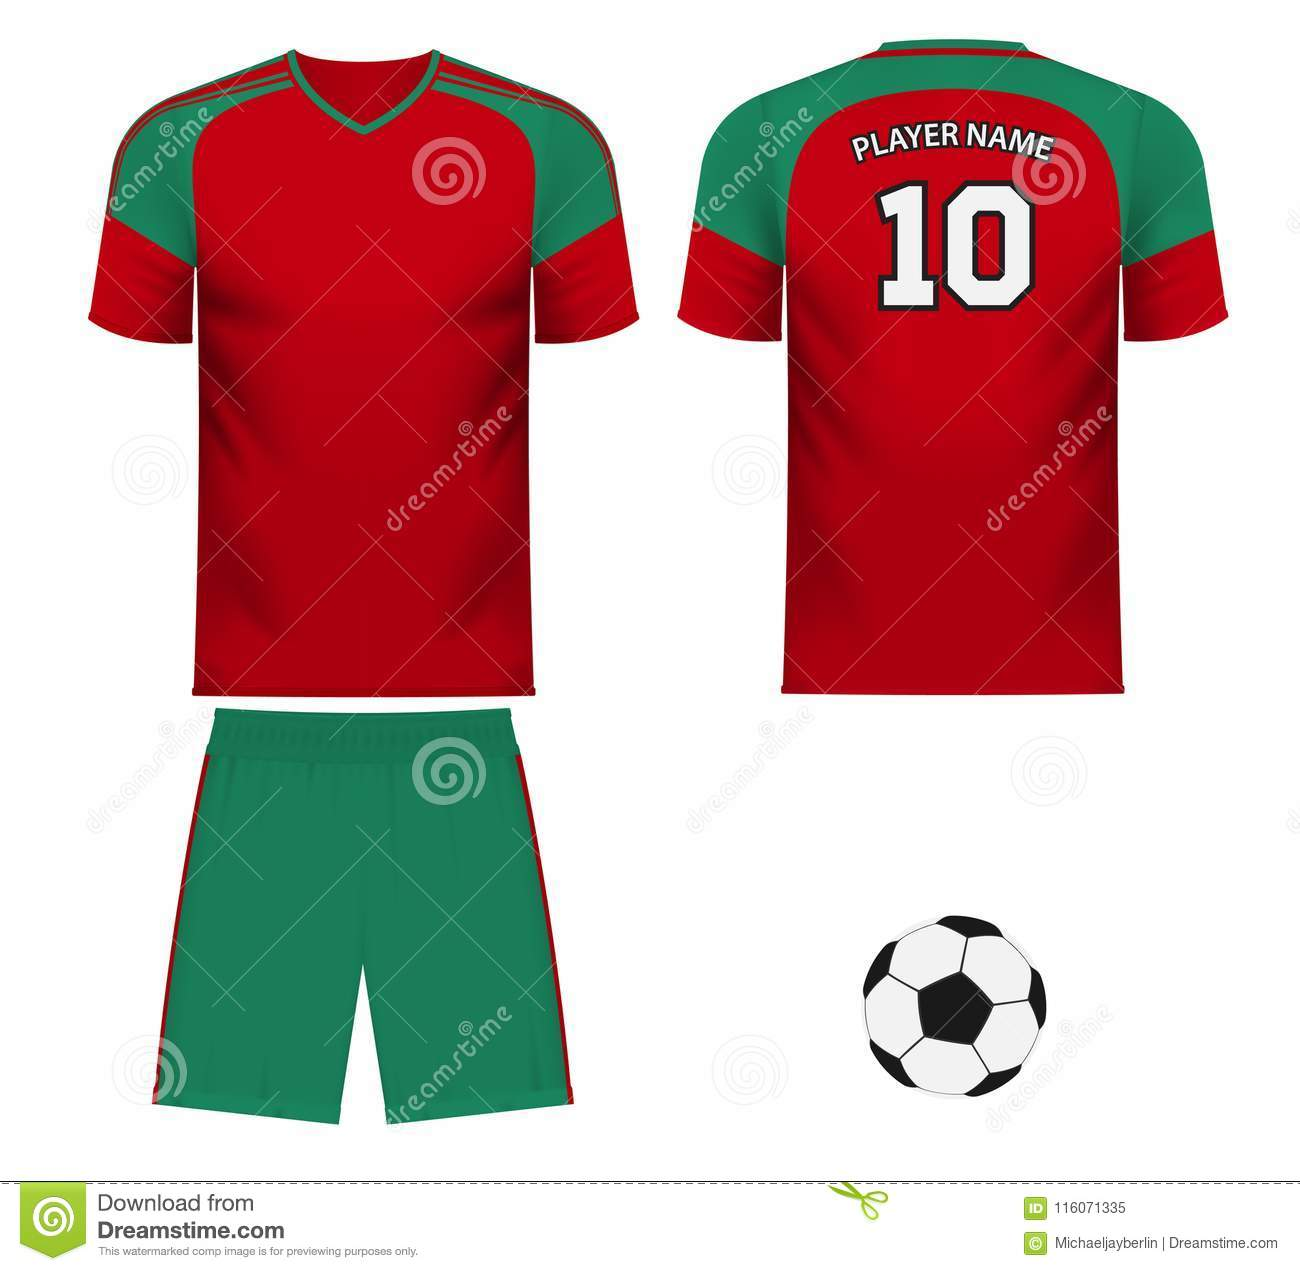 f6b12bcee3a Morocco national soccer team shirt in generic country colors for fan apparel